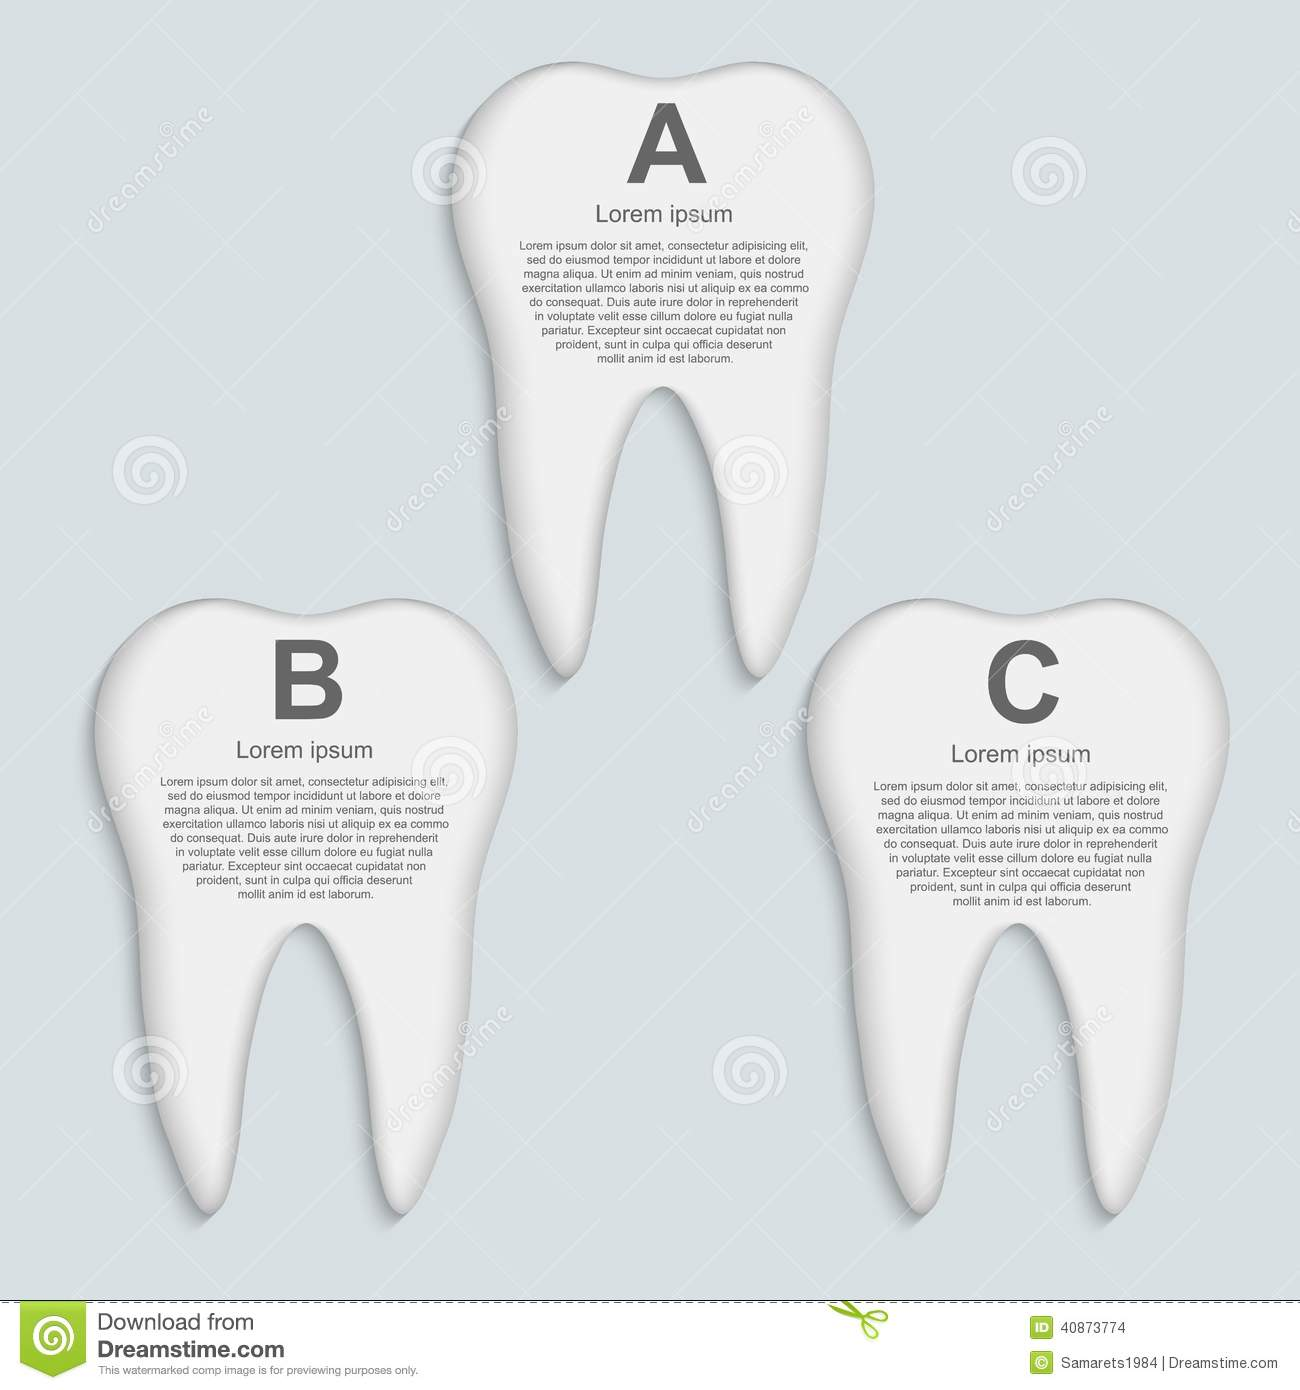 Tooth Infographic. Design Template. Stock Vector - Image: 40873774